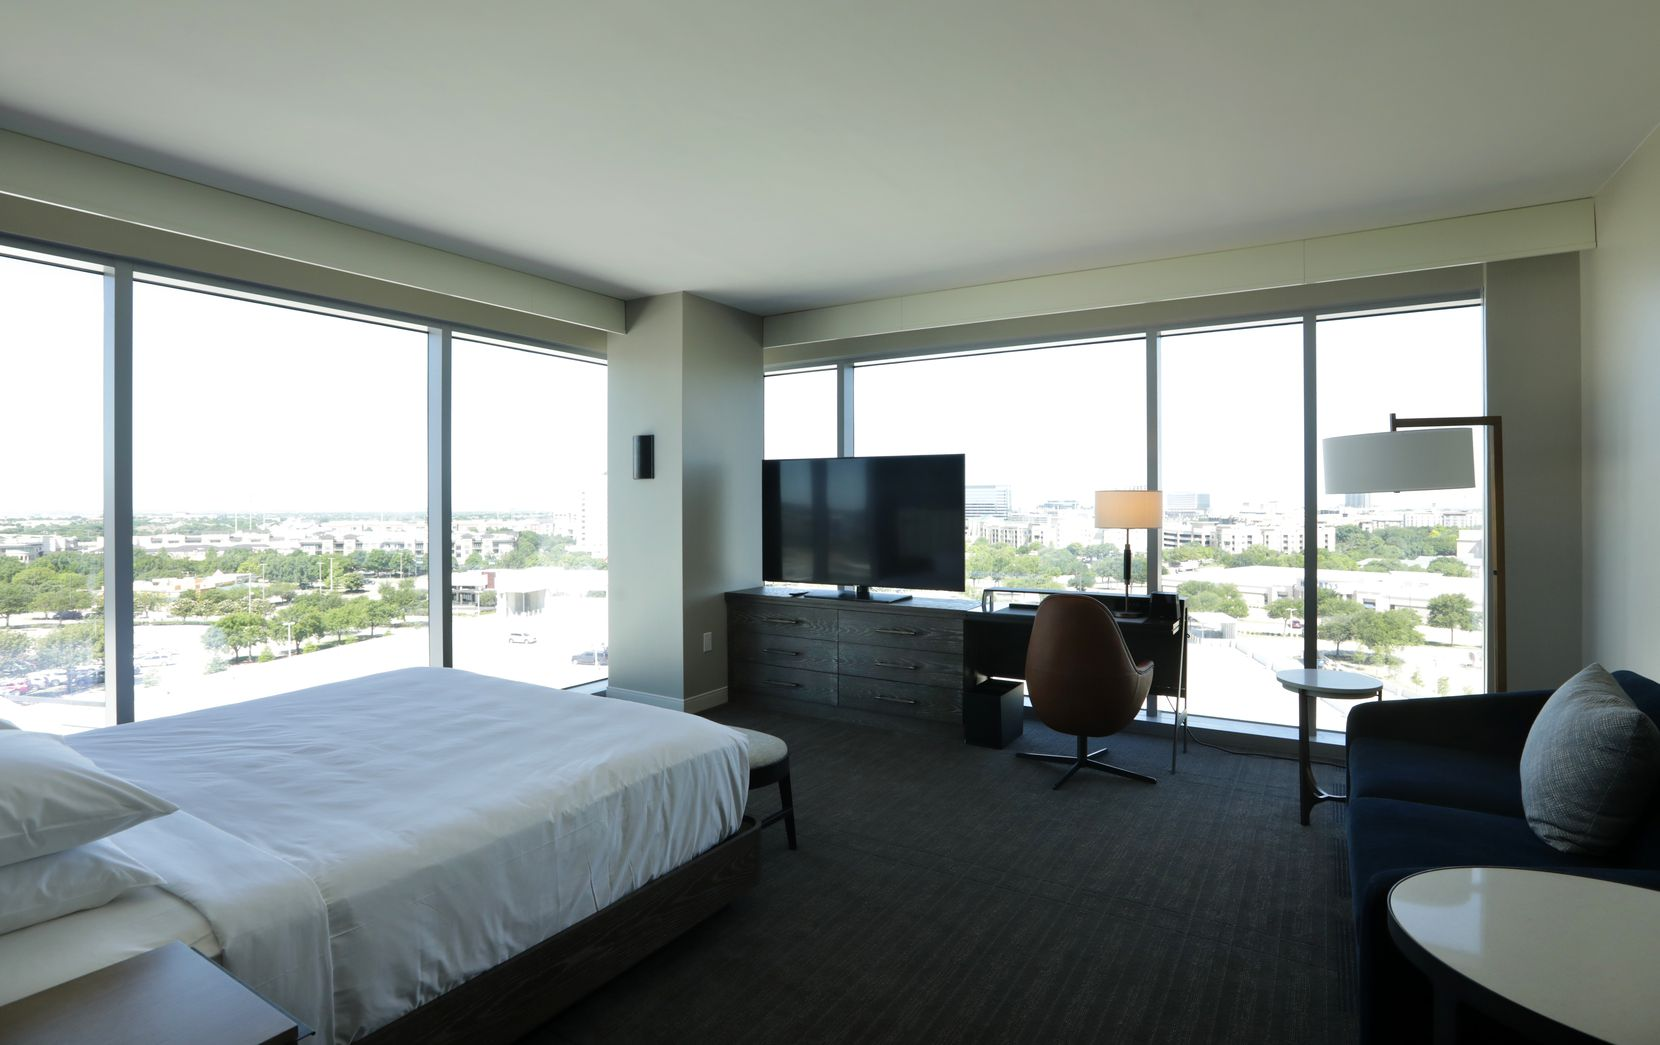 A bedroom at the Frisco Hyatt Regency.